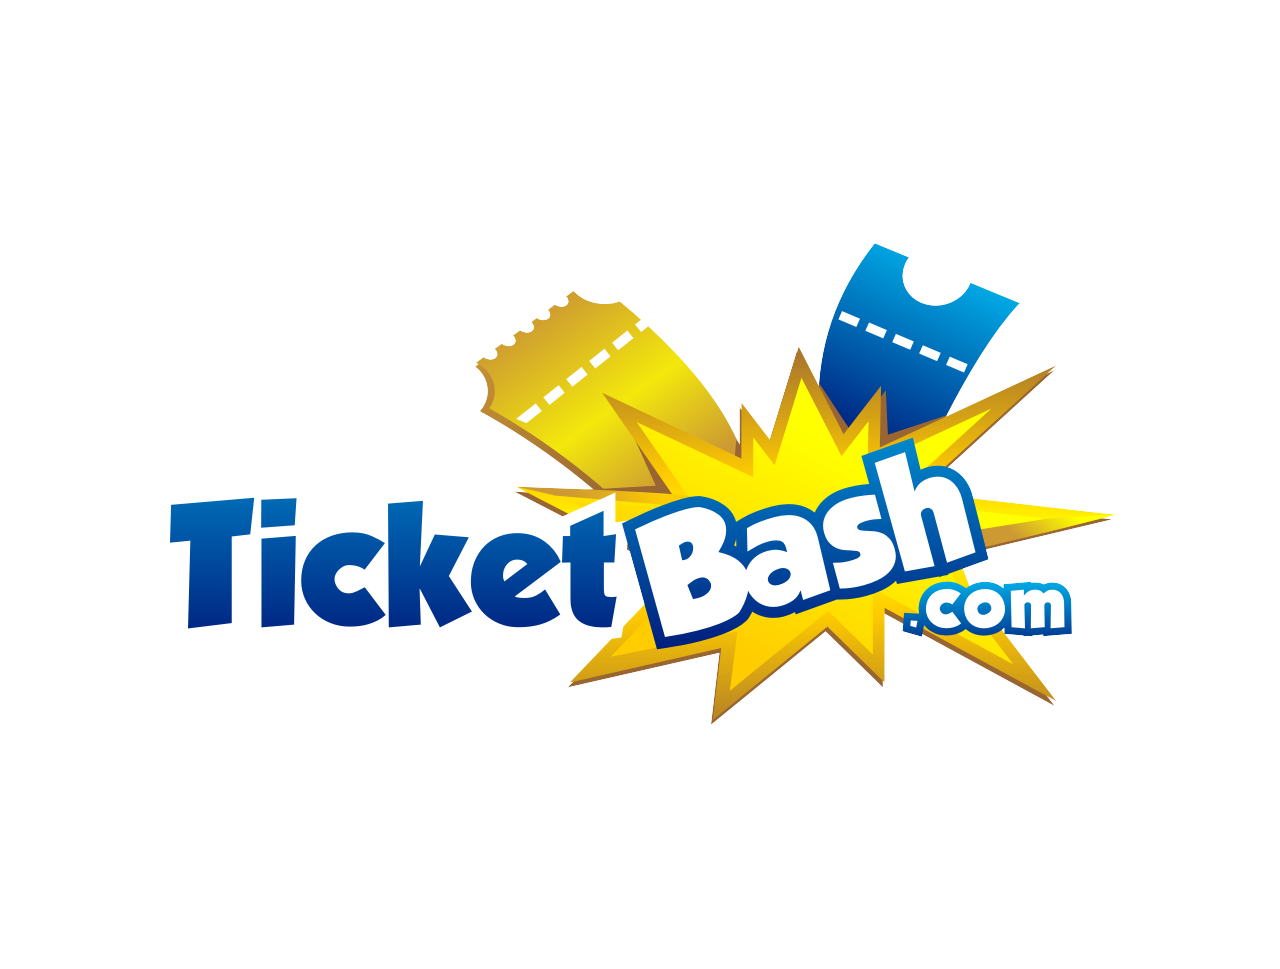 Ticket Bash